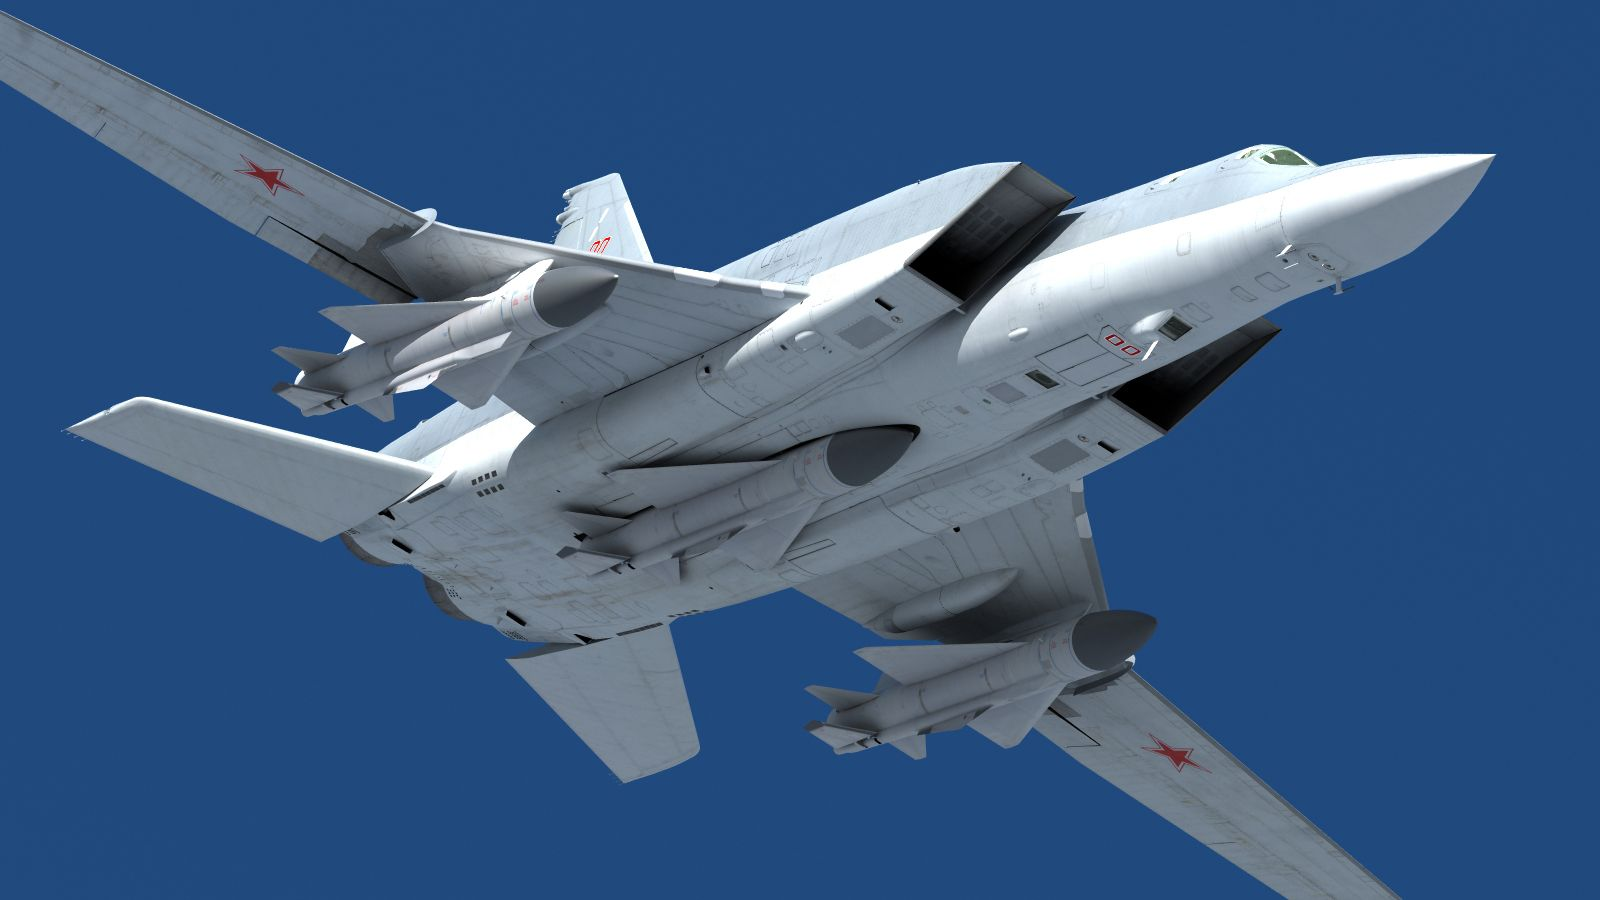 TU-22M-with-Kh-22-missiles